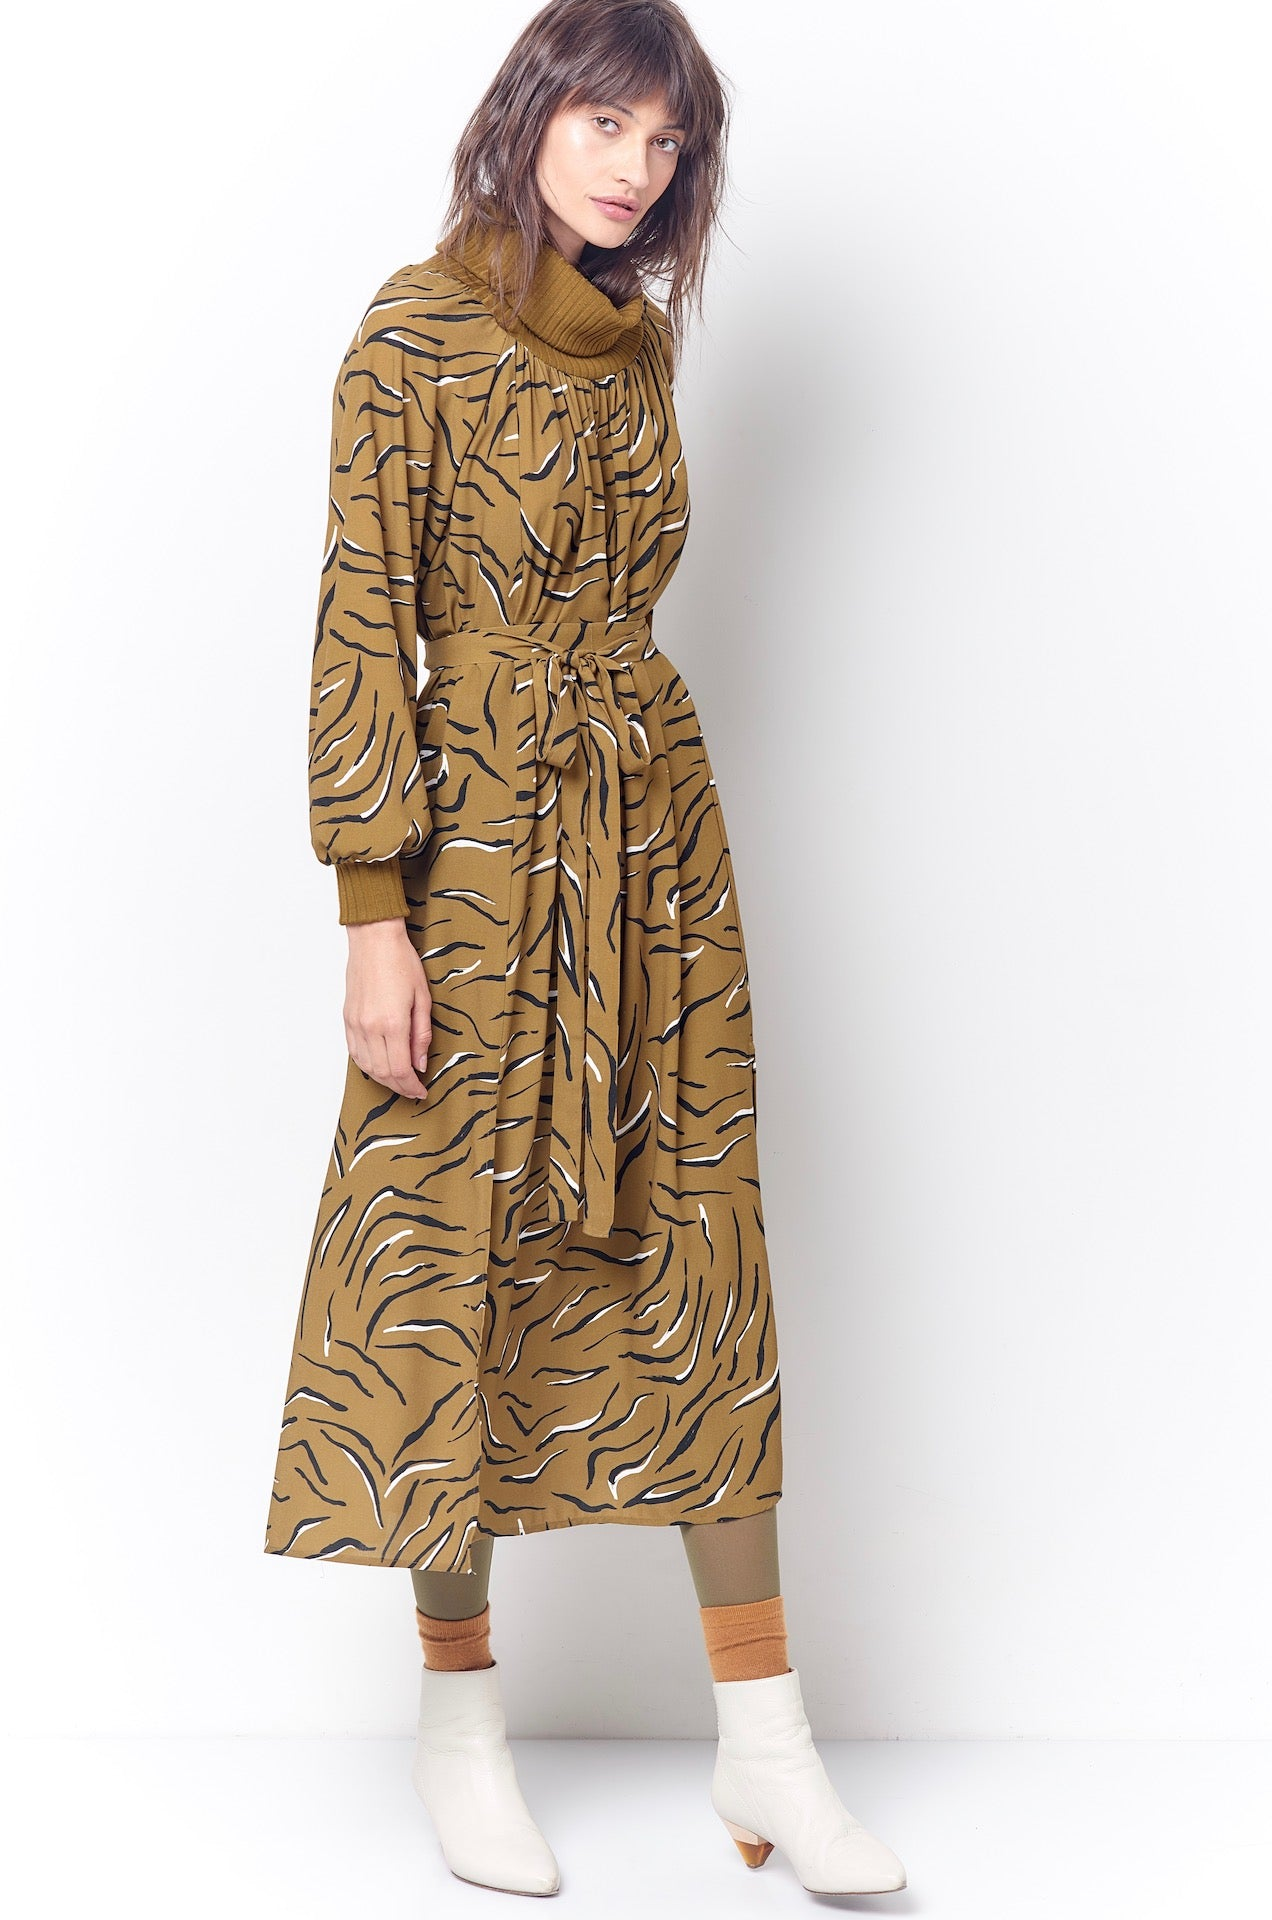 RITA Turtleneck Midi Dress - Tiger